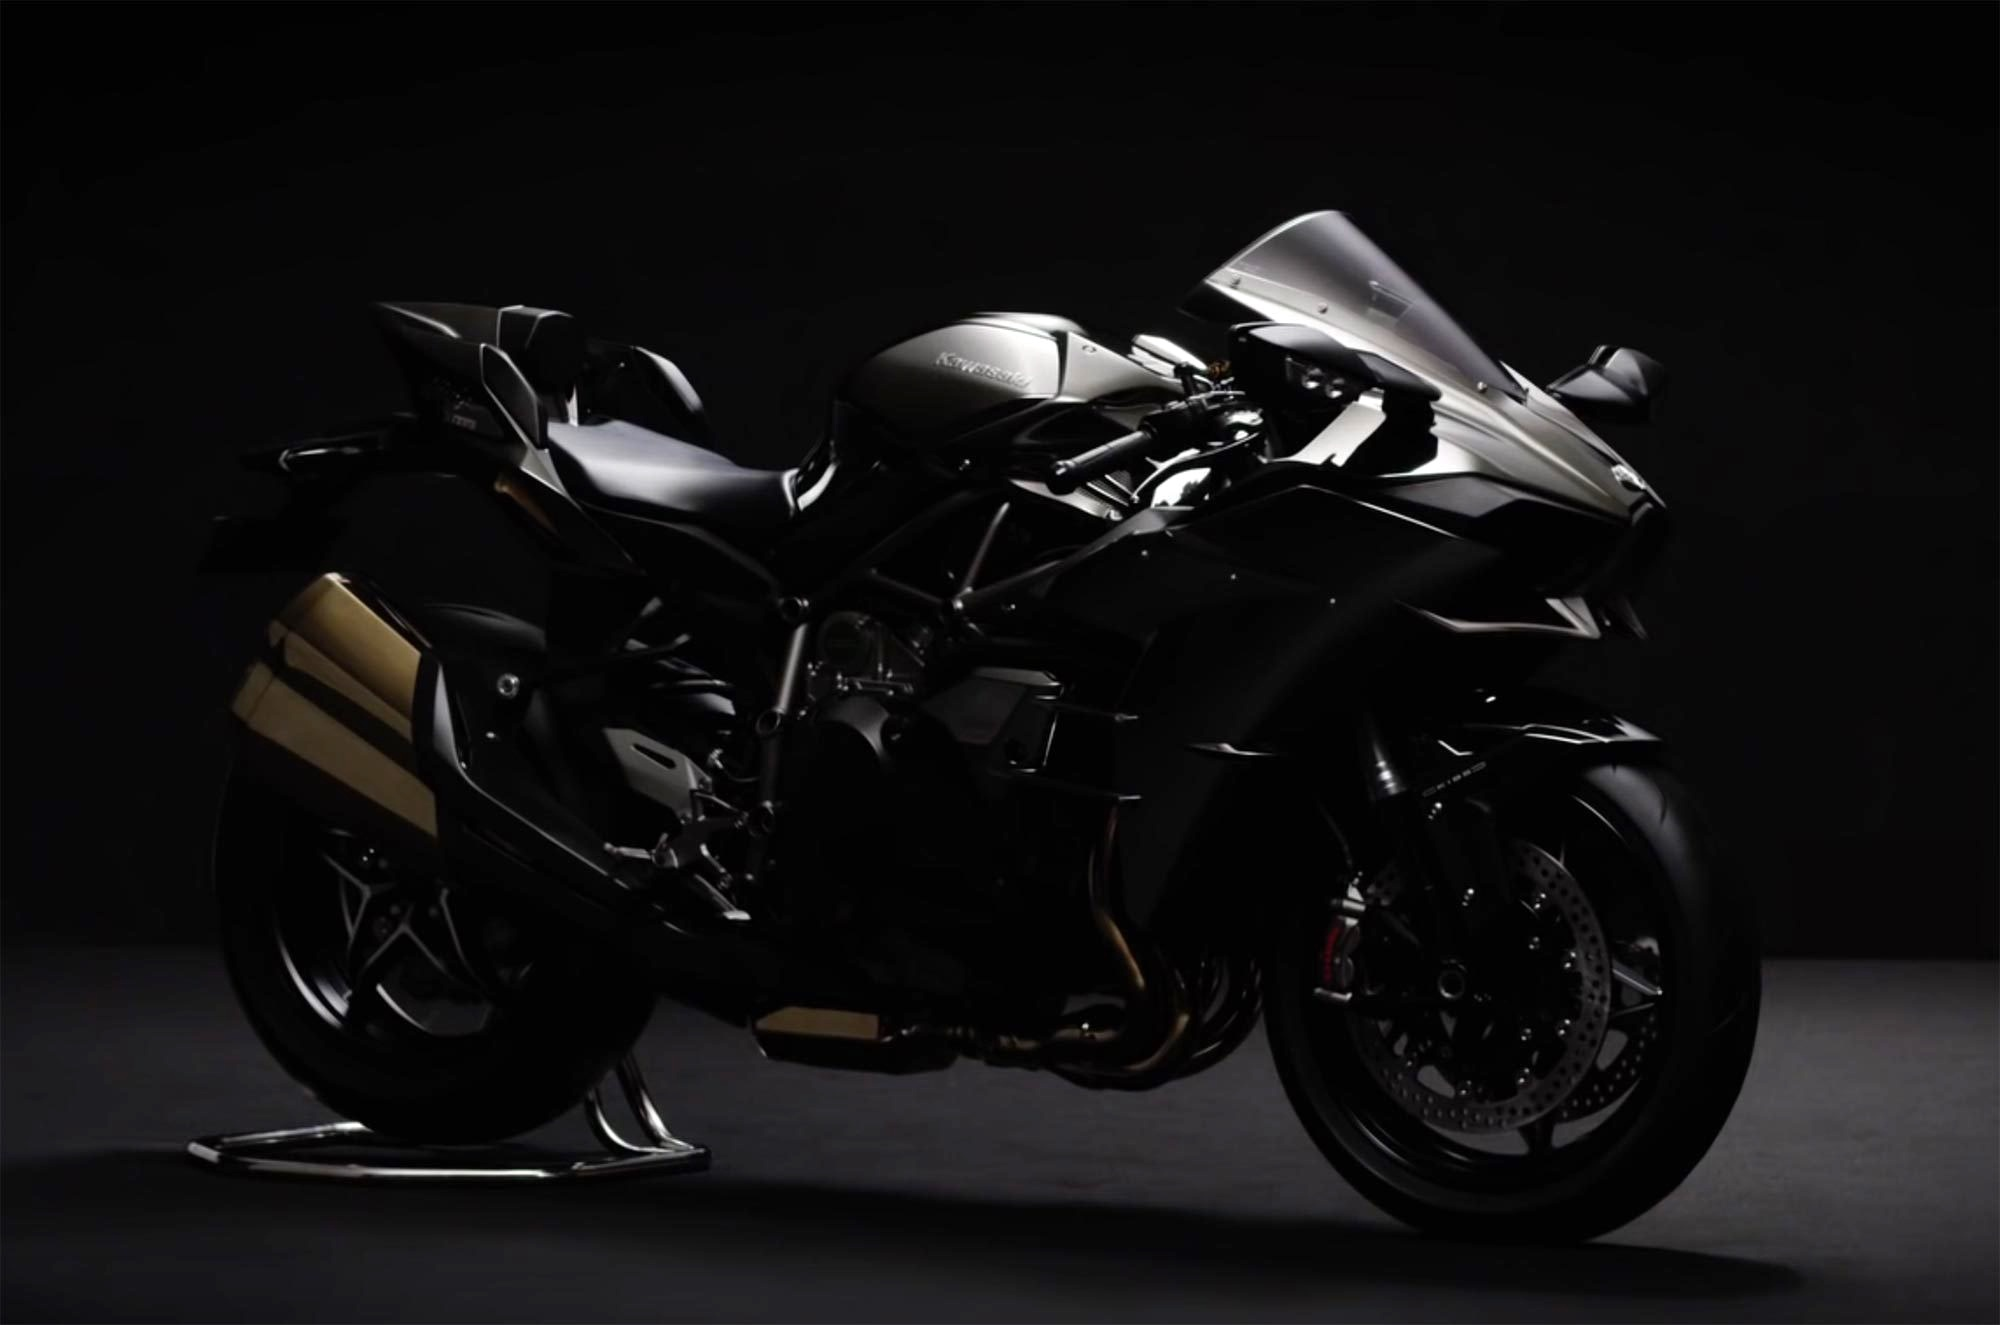 2016 Kawasaki Ninja H2 Spark Black colour option